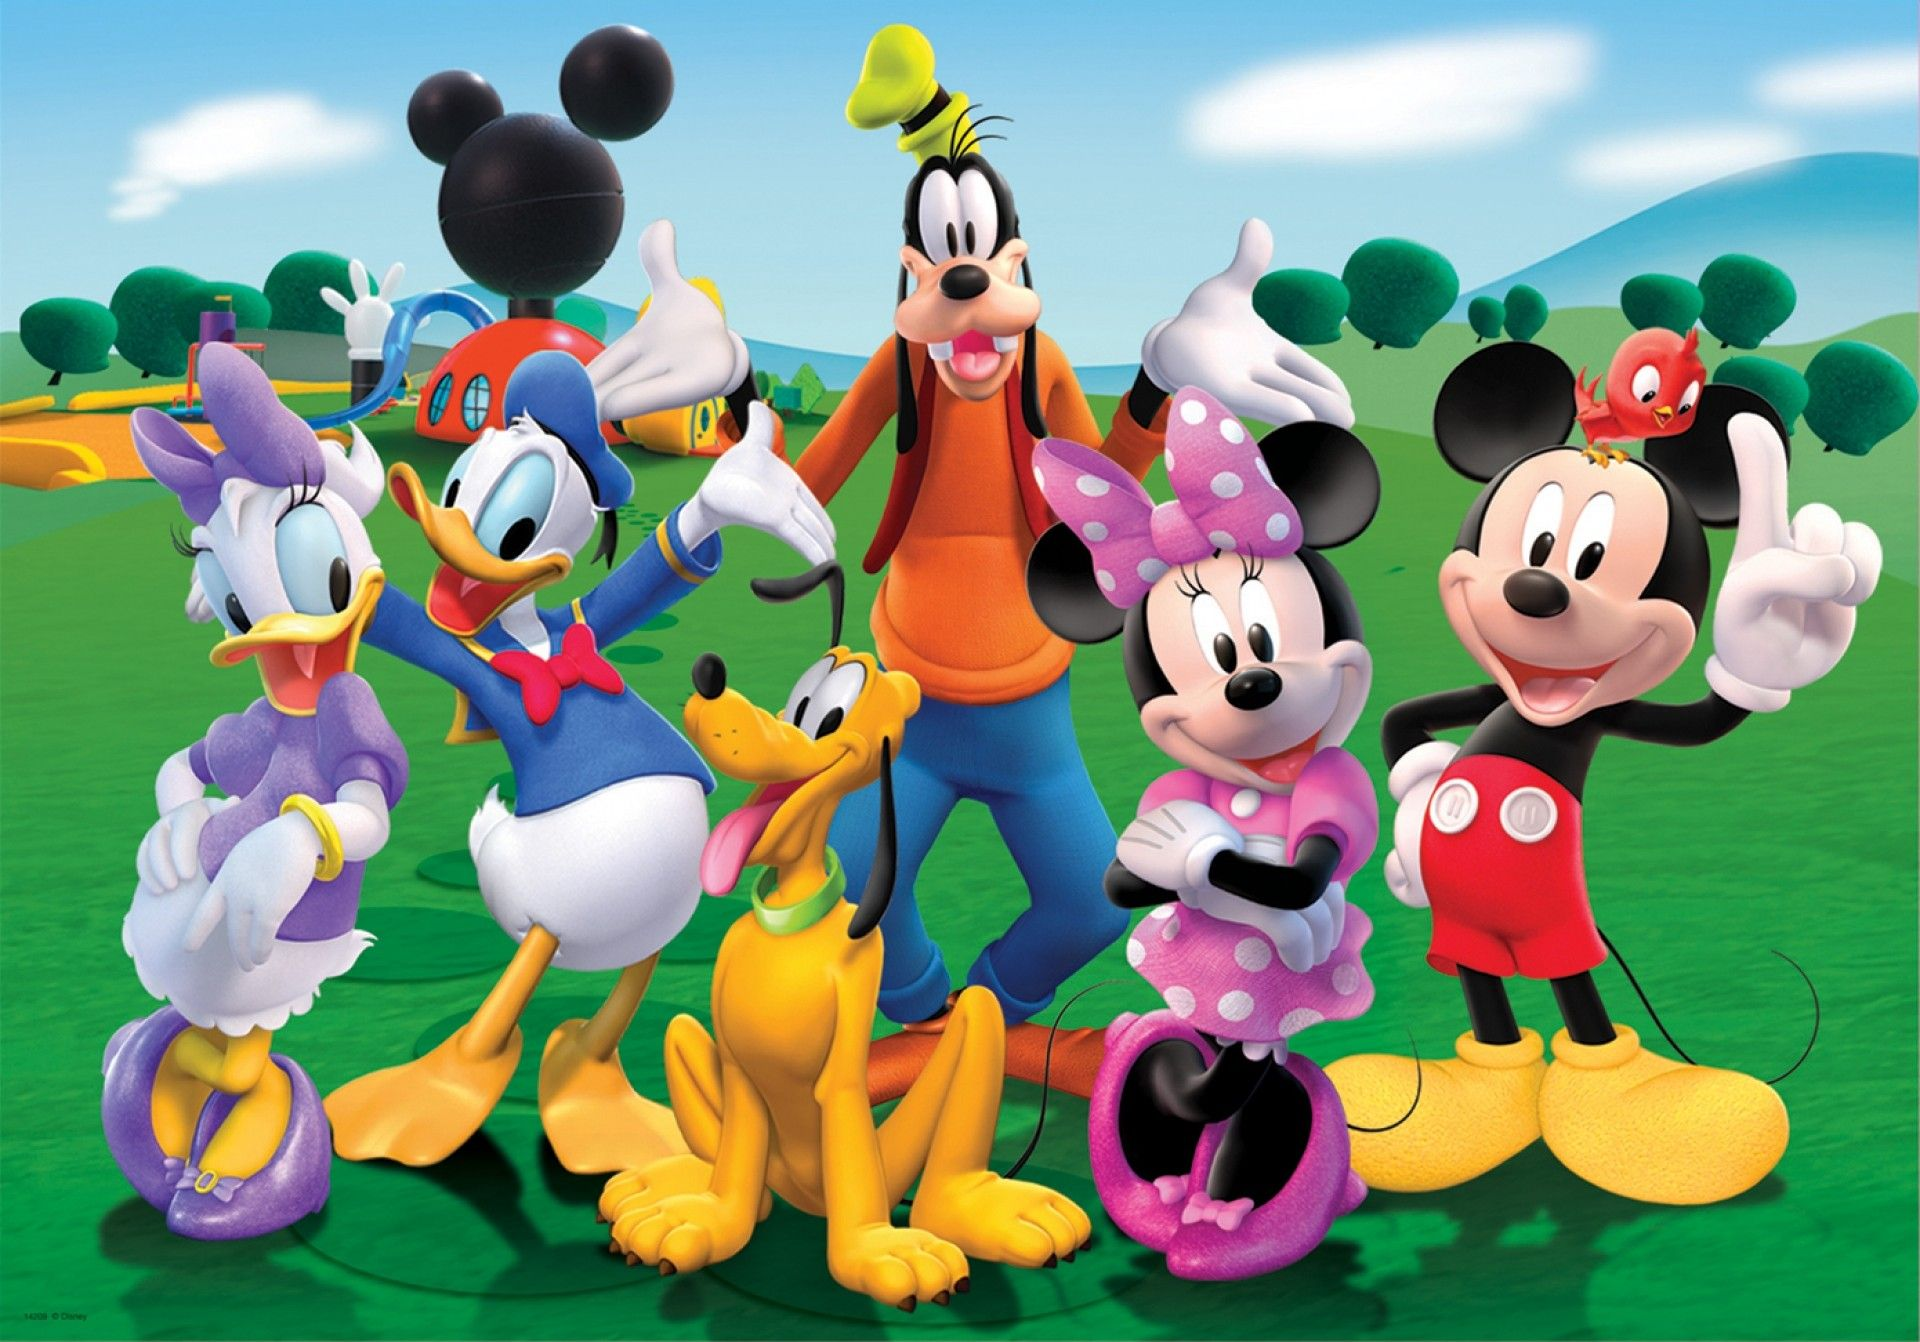 Mickey Mouse Clubhouse Wallpapers Top Free Mickey Mouse Clubhouse Backgrounds Wallpaperaccess